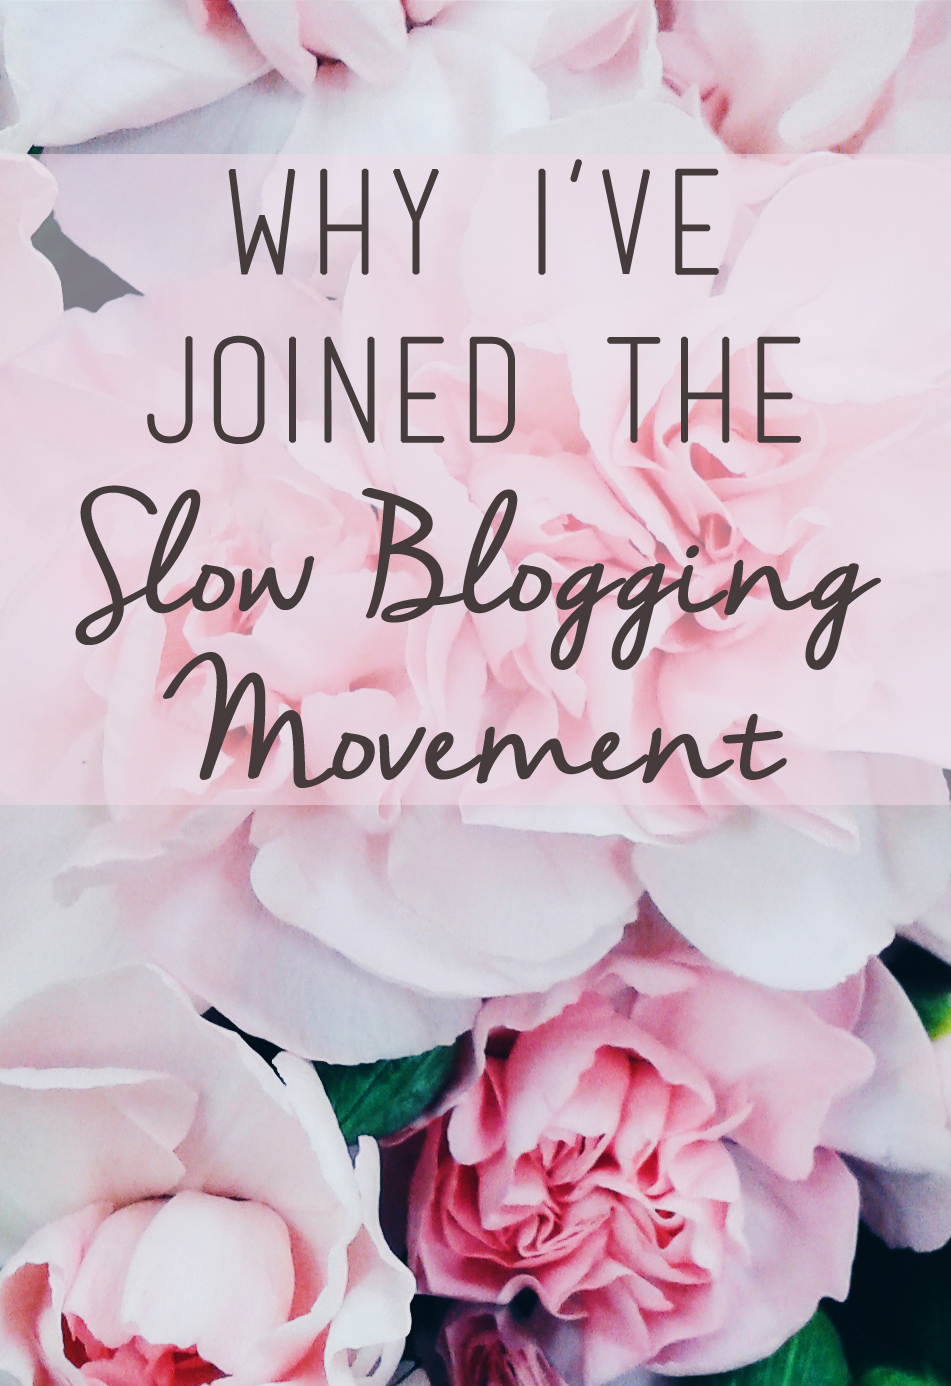 peonies, slow blogging, blogging tips, fashion blogger, slow blogging manifesto